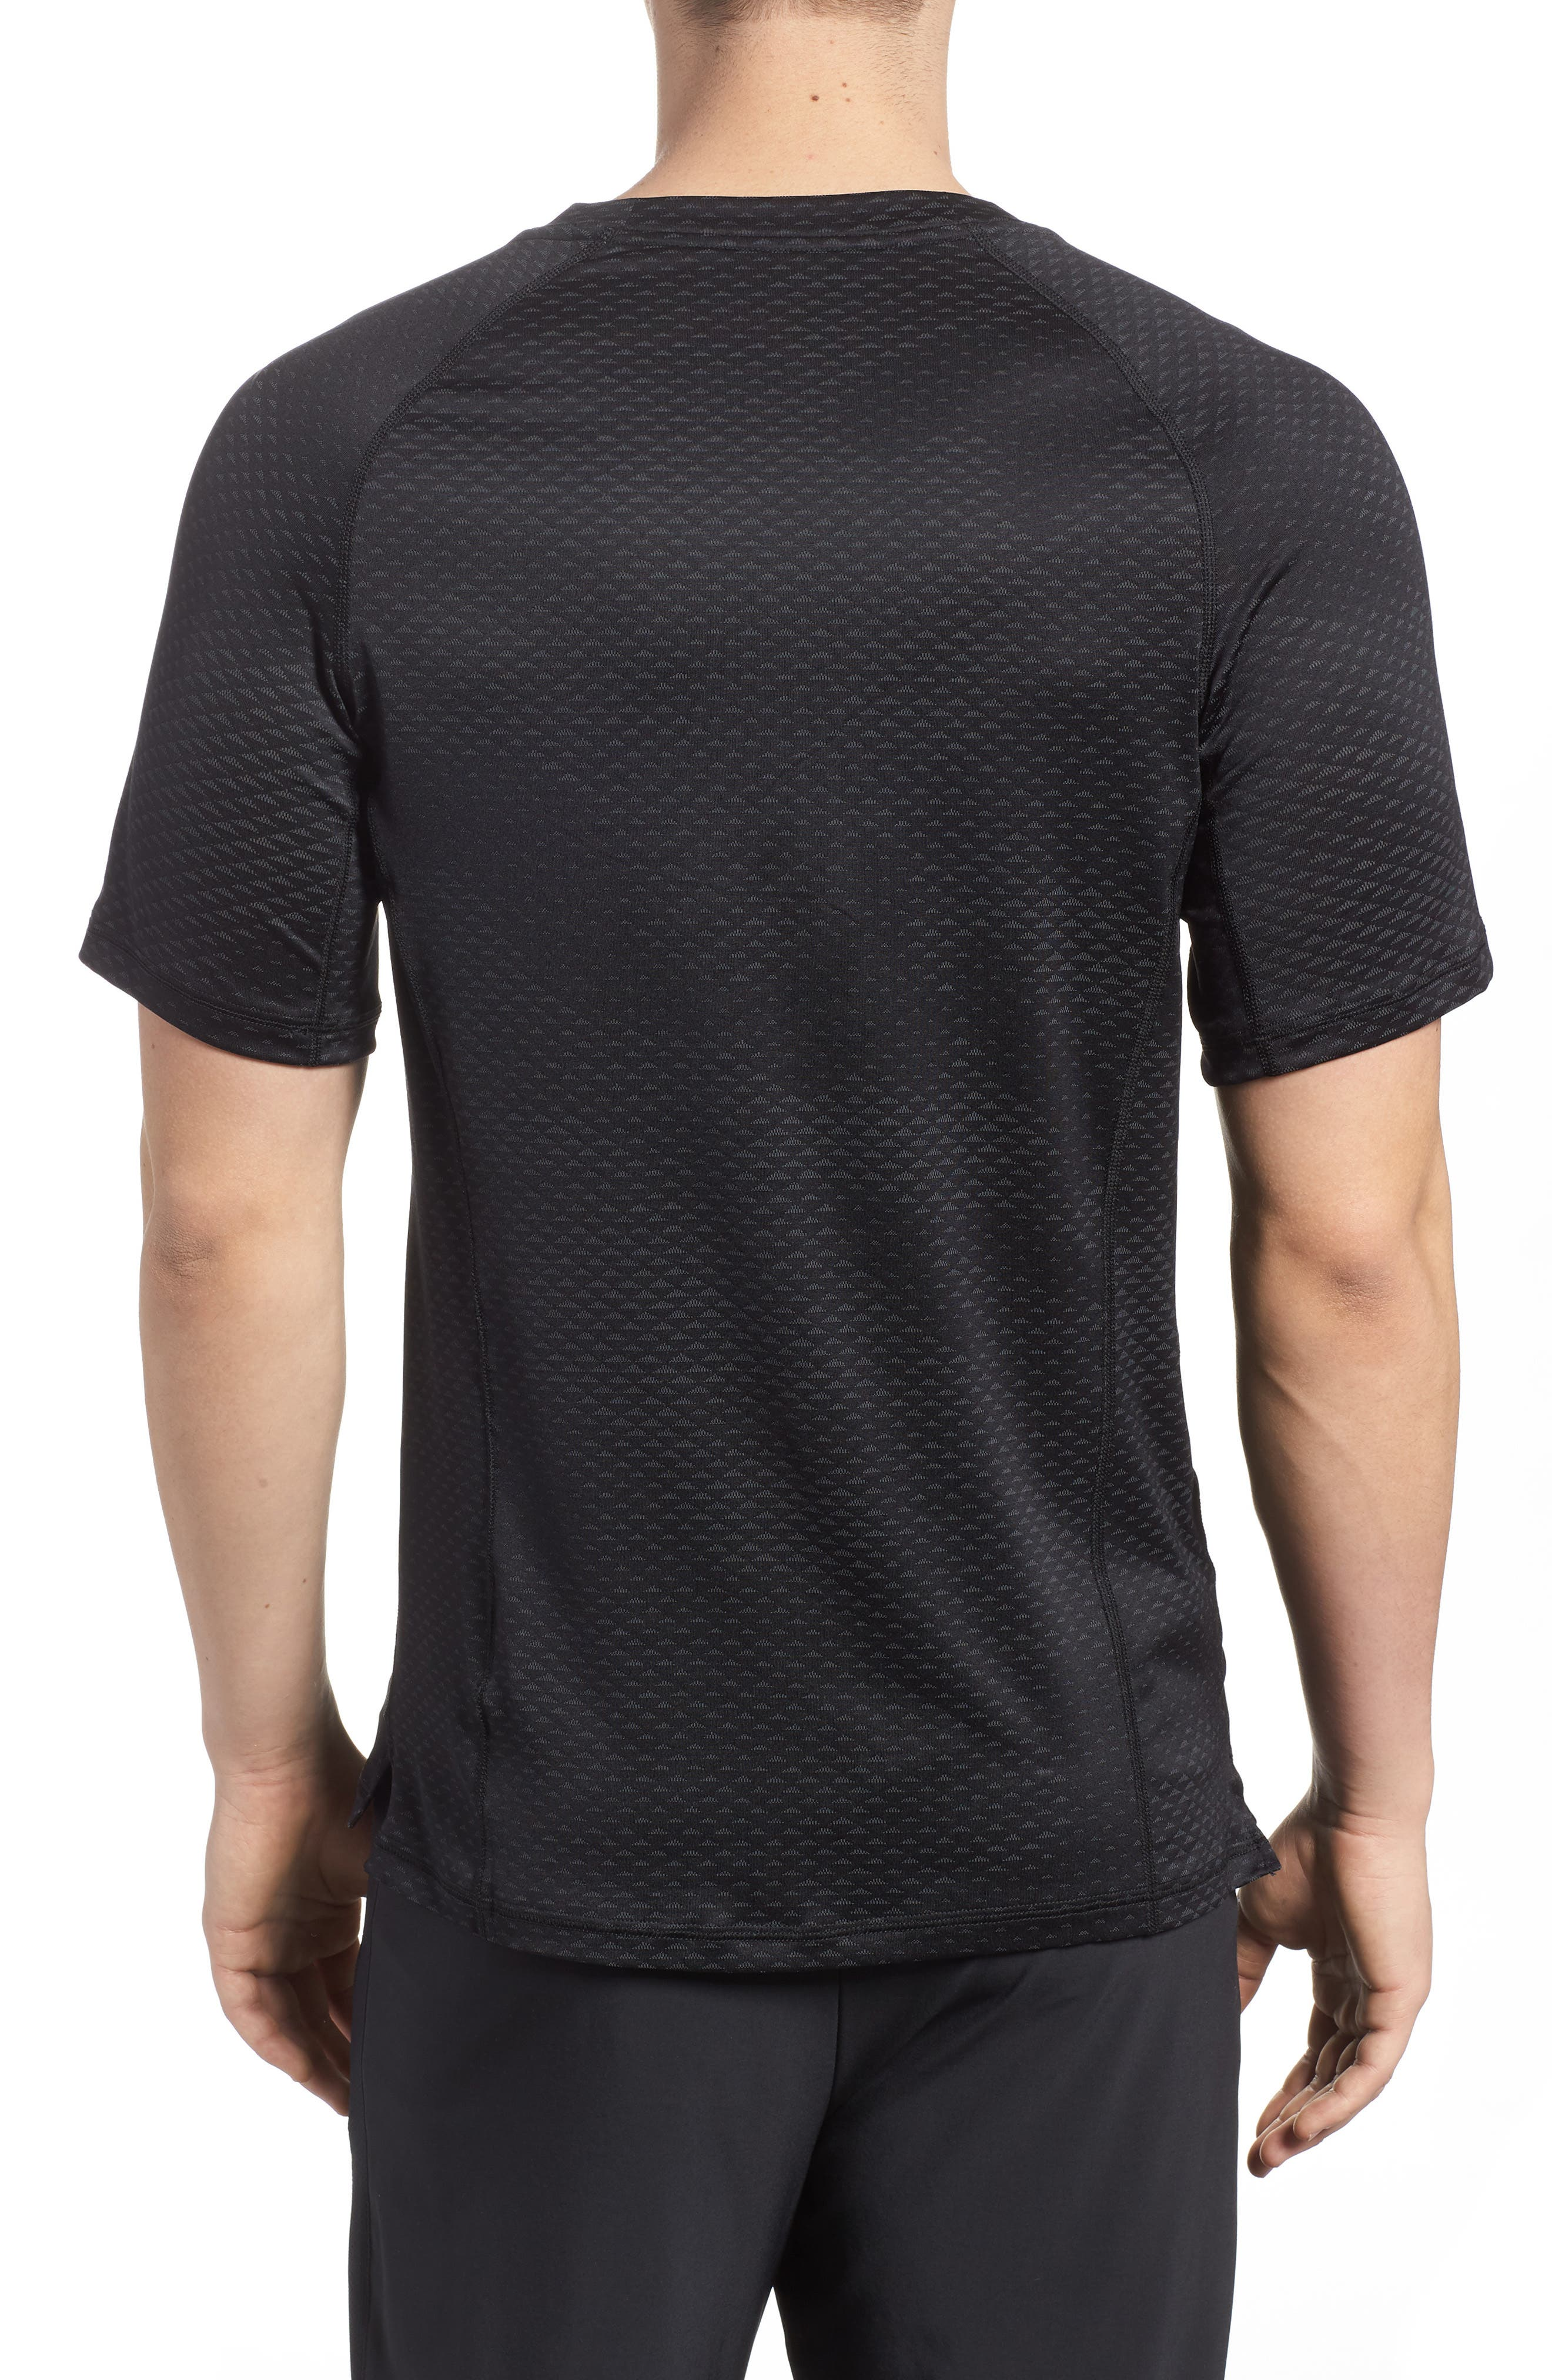 Pro HyperCool Fitted Crewneck T-Shirt,                             Alternate thumbnail 2, color,                             010